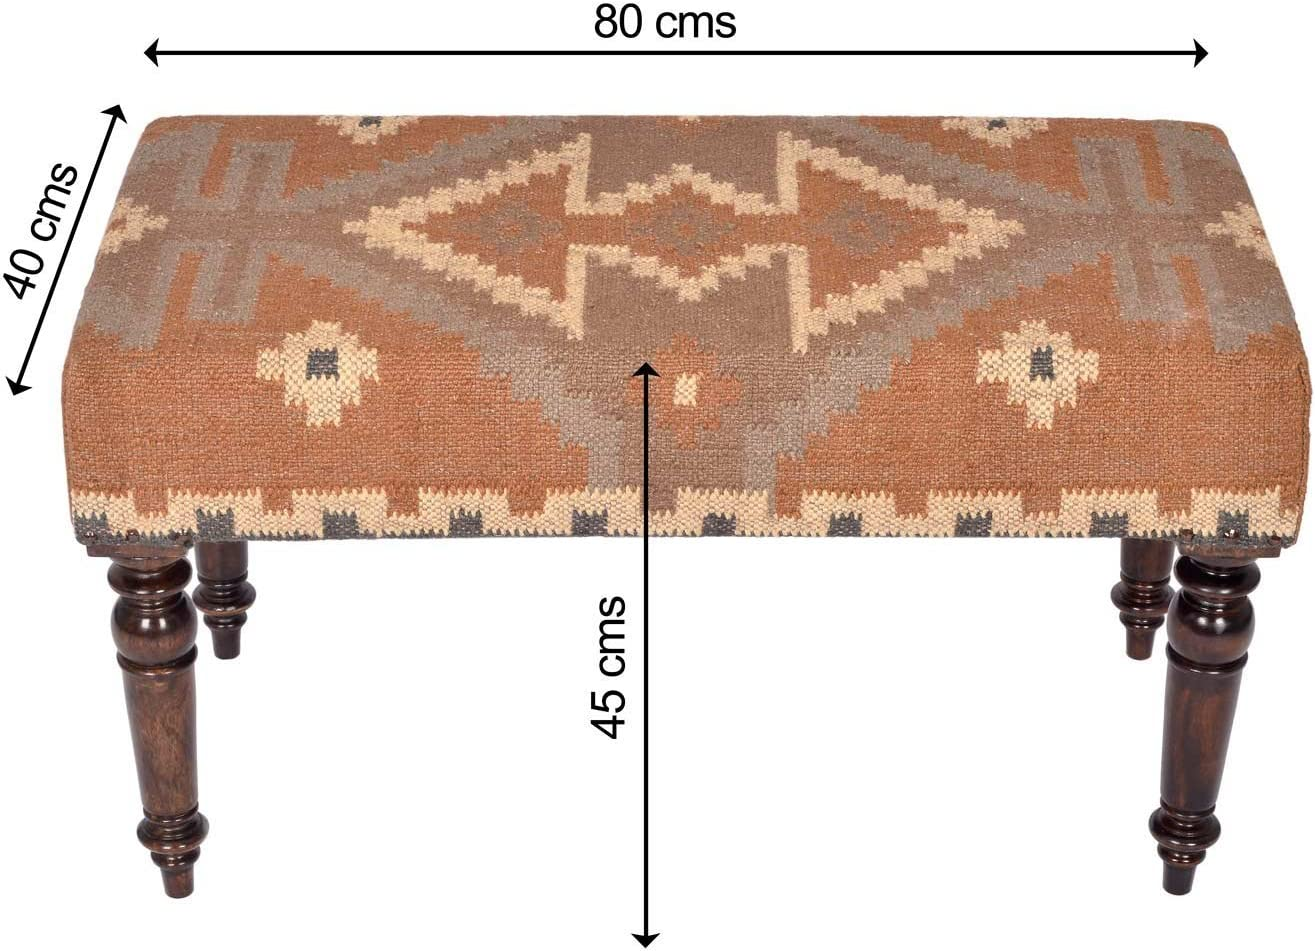 HOMESCAPES Upholstered Kilim Bench Footstool or Rectangular Coffee Table Red Handmade Solid Wood Frame with Traditional Hand woven Wool Rug Cover